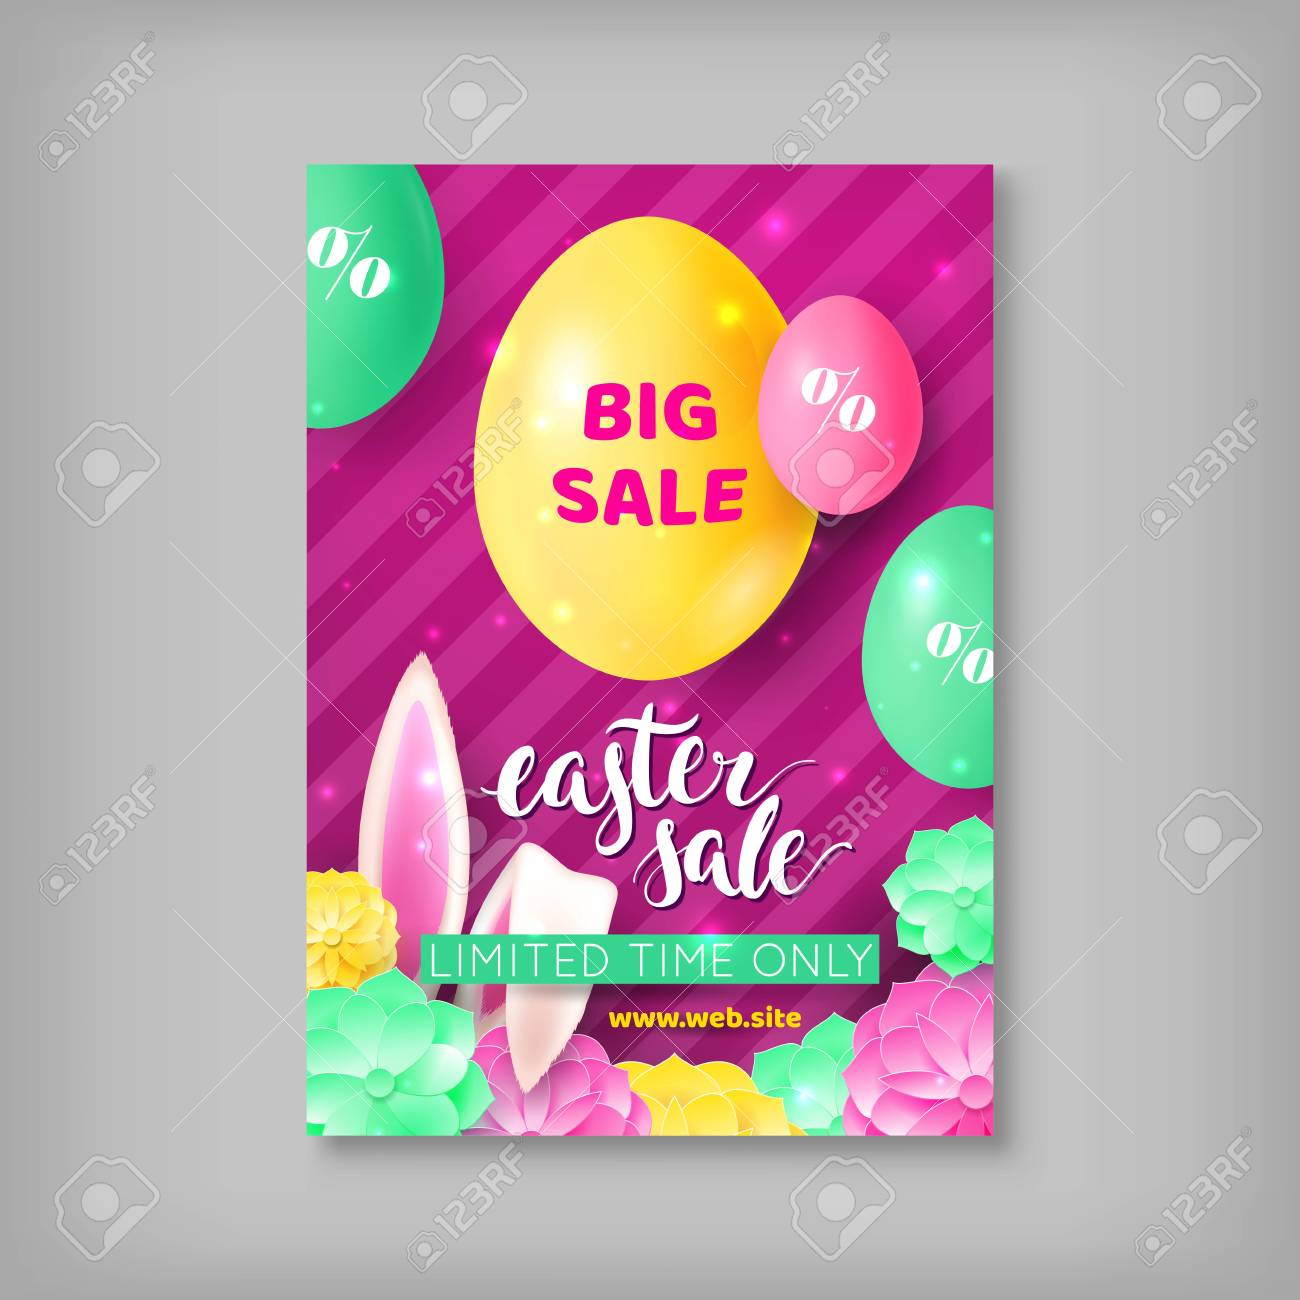 Easter Sale Flyer Template With Colorful Eggs And Rabbit Ears, Isolated On  Gray Background.